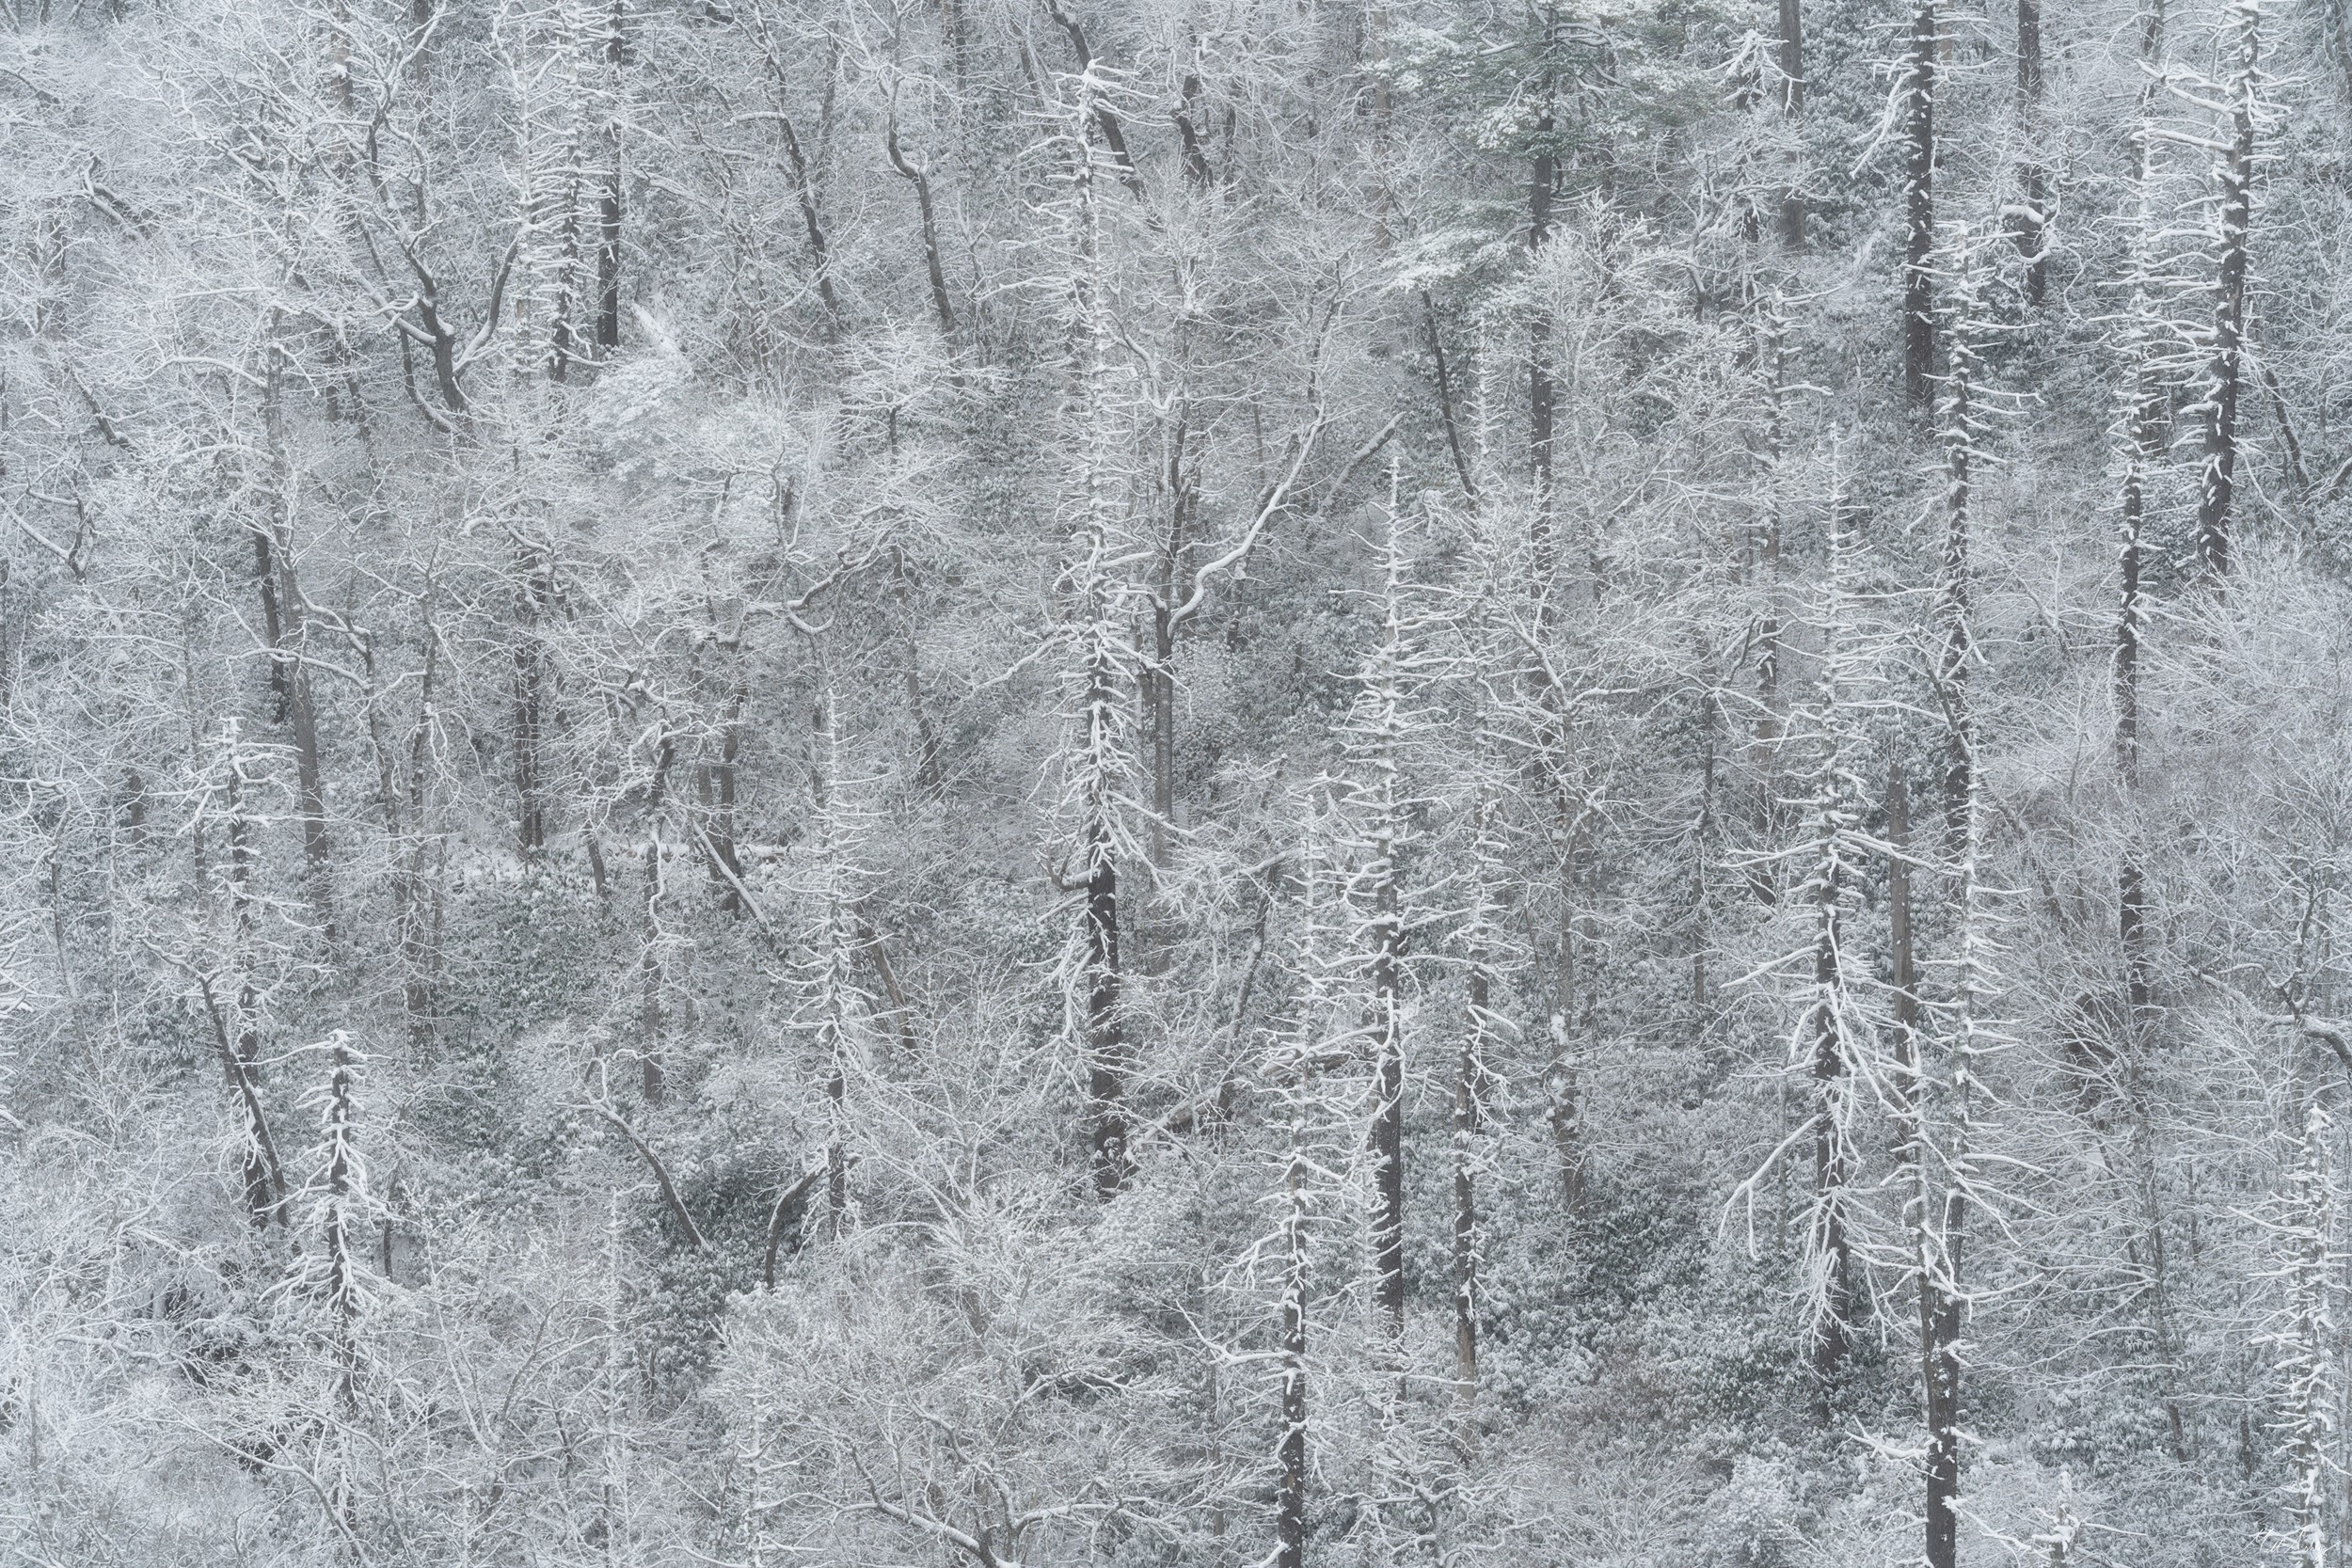 A dark stand of trees caked in snow after a winter storm.